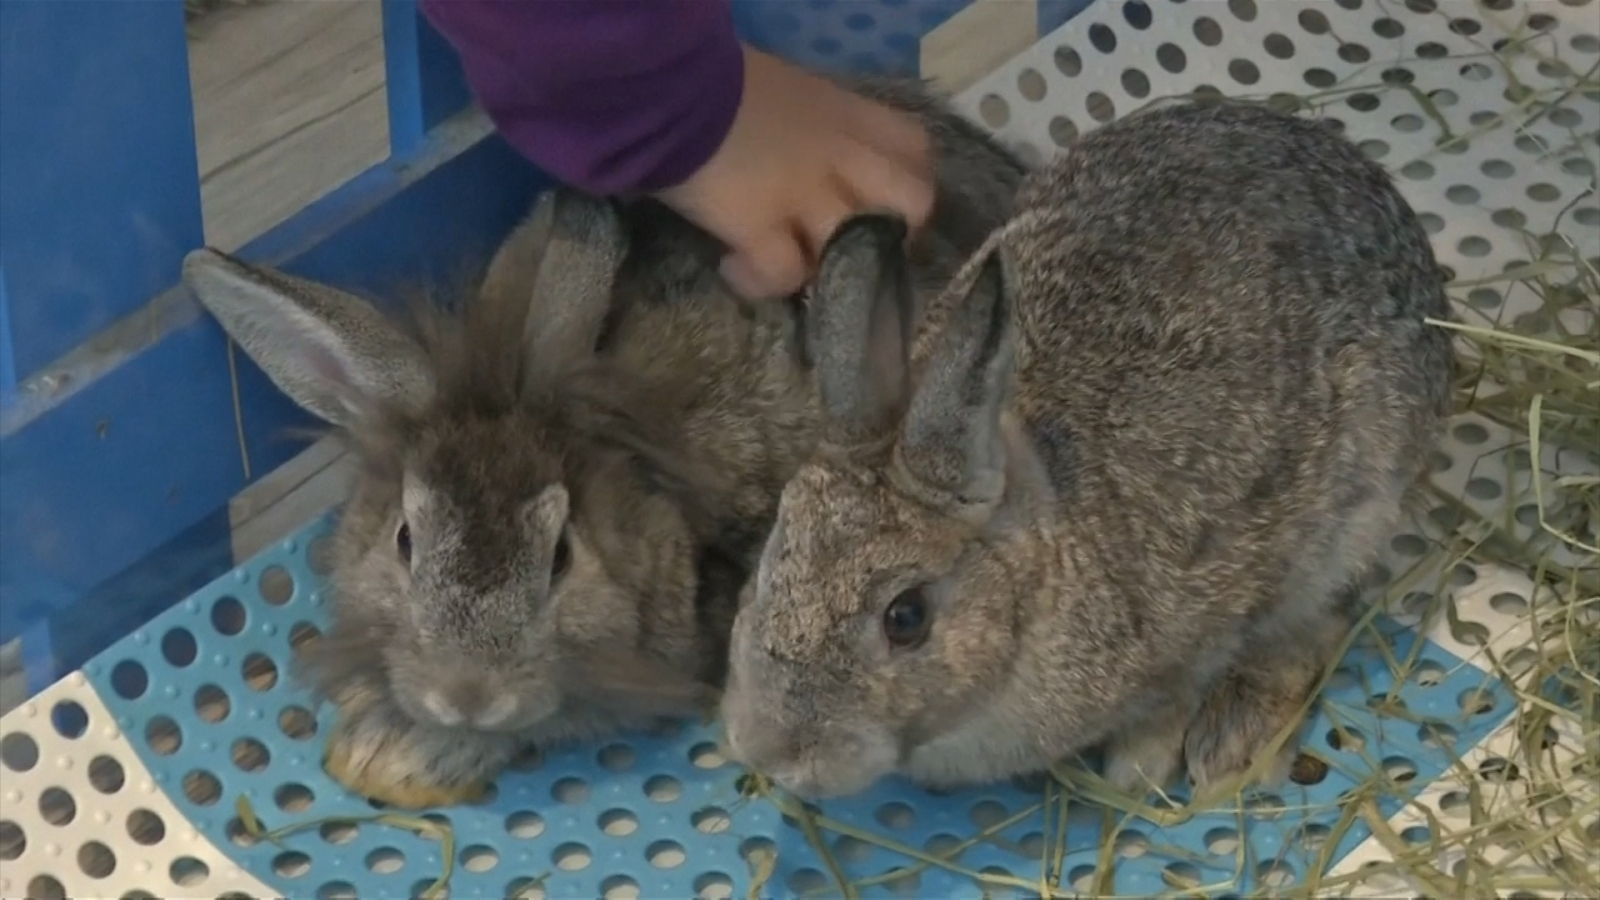 Hong Kong's first rabbit cafe finds itself in licensing trouble